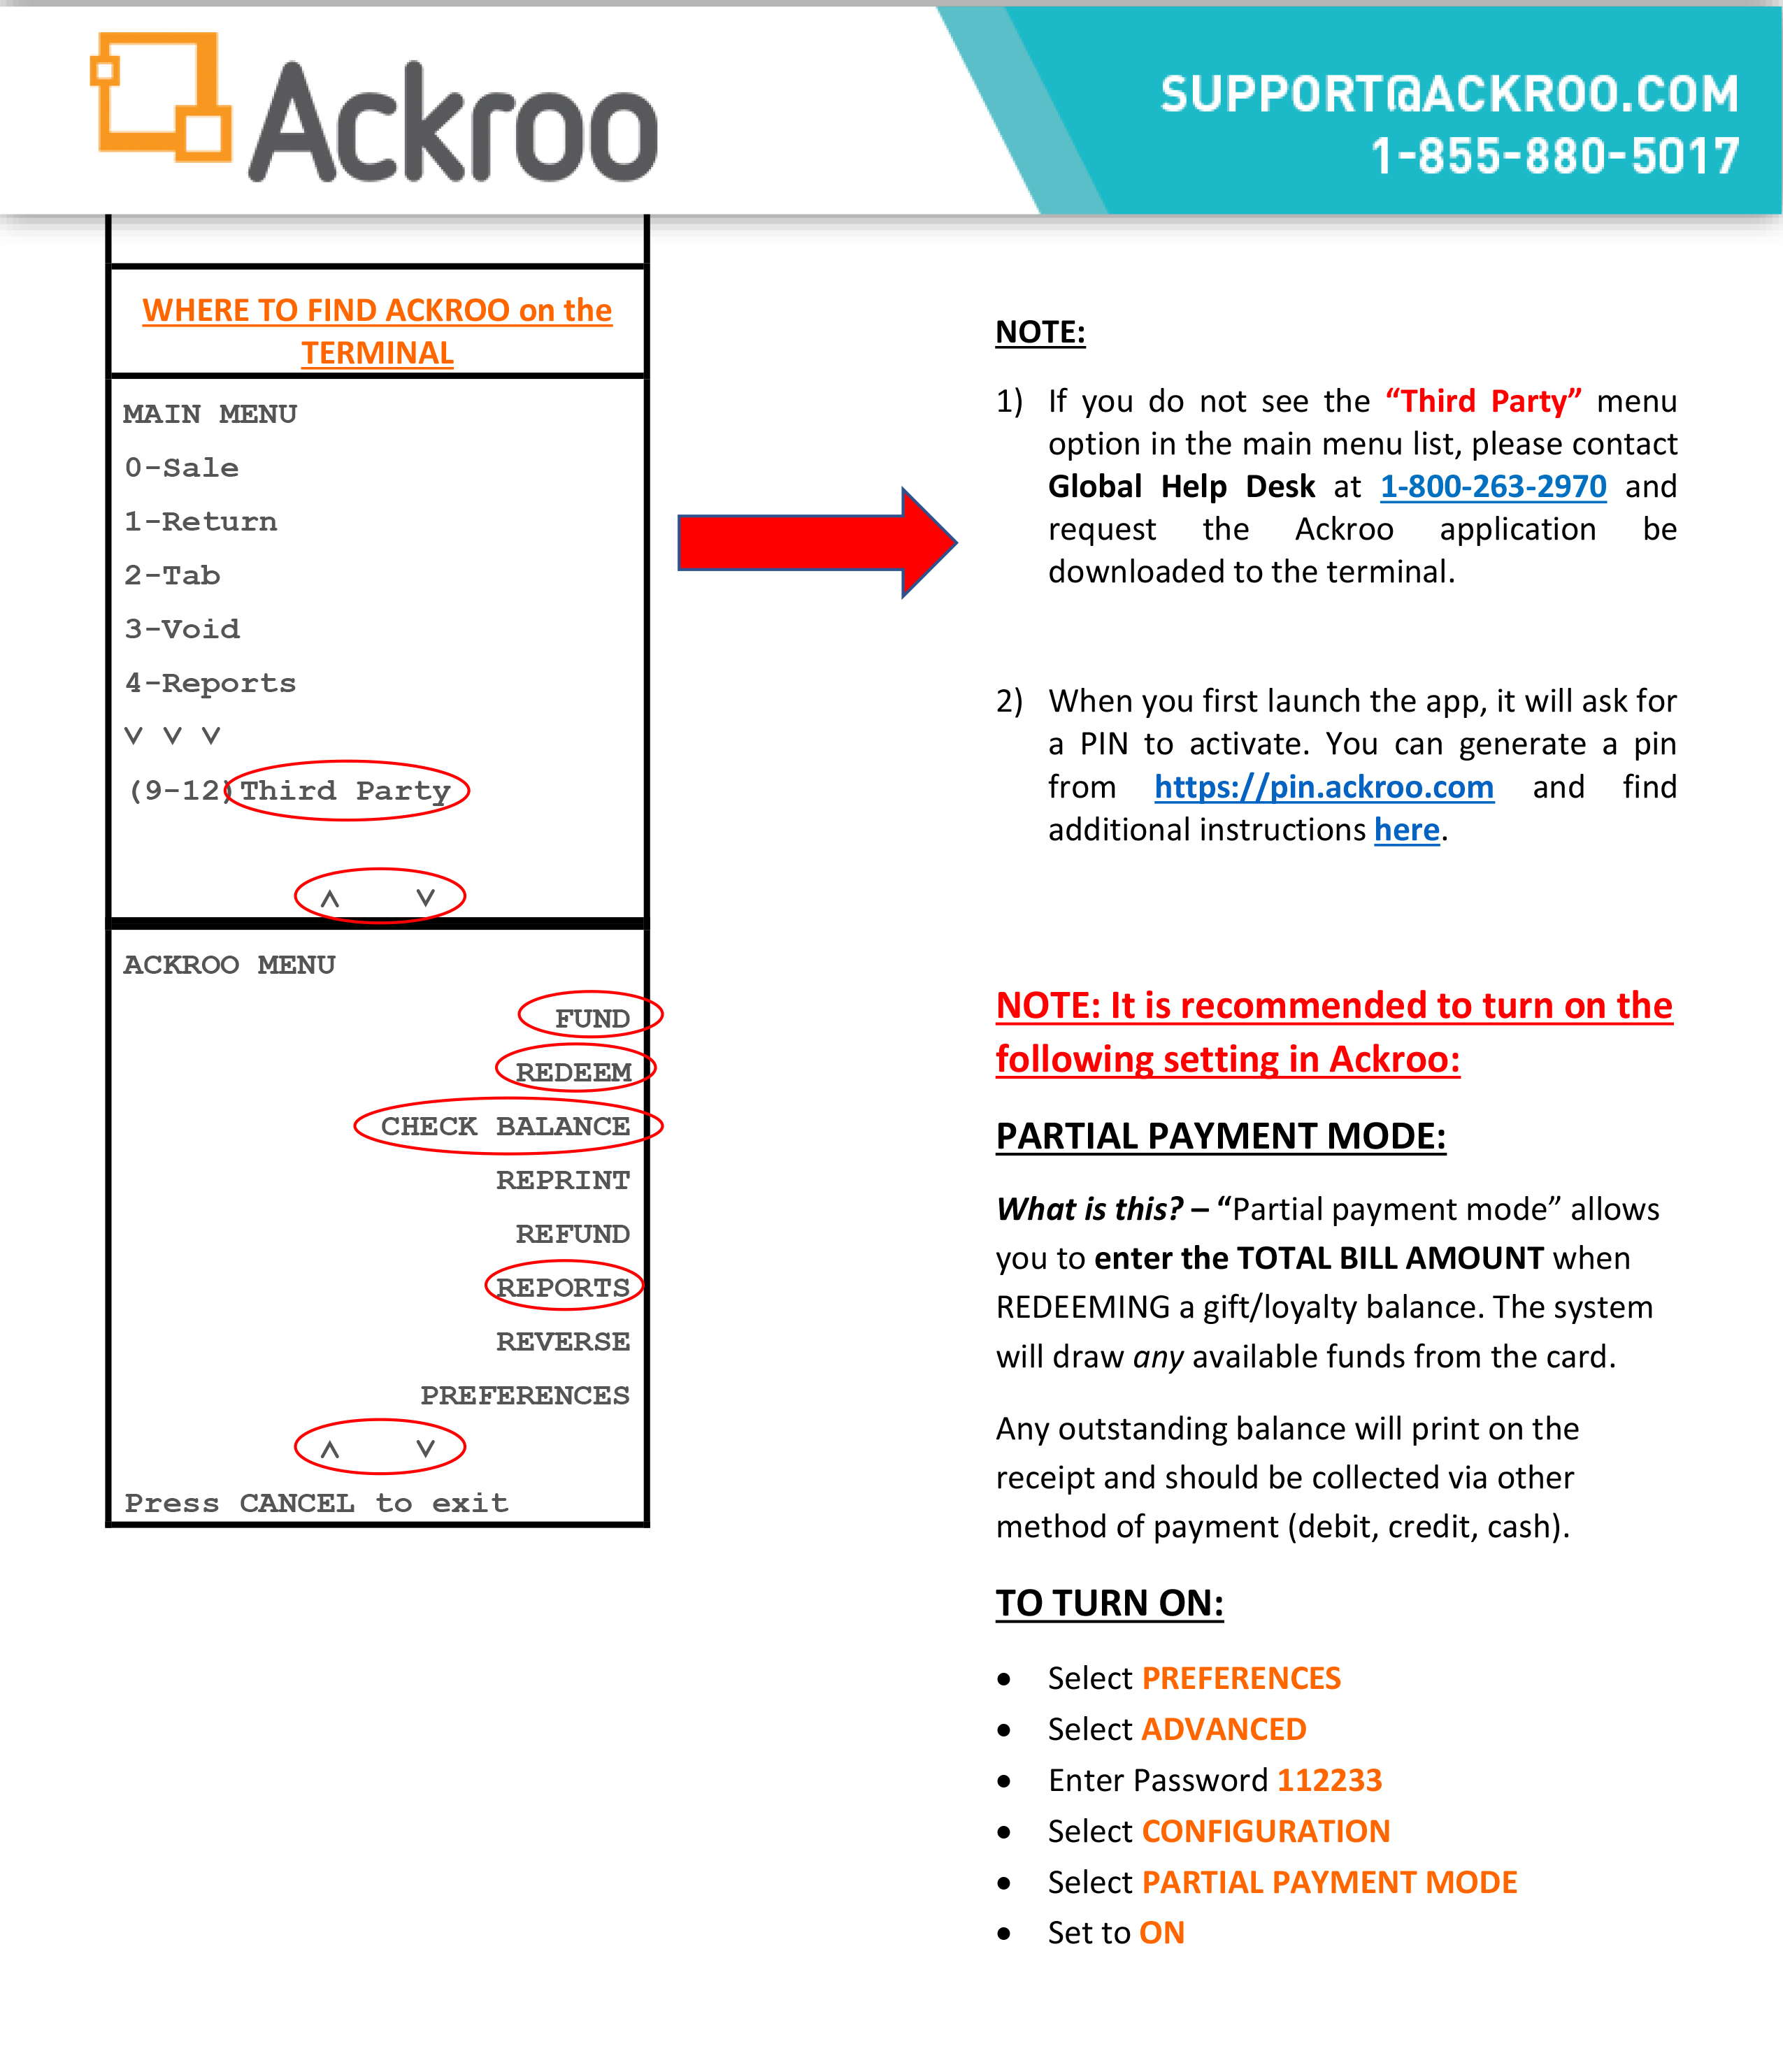 ACKROO_MENU_GUIDE_for_iCT-iWL_Terminals__GLOBAL__-_GIFT_ONLY-1.jpg